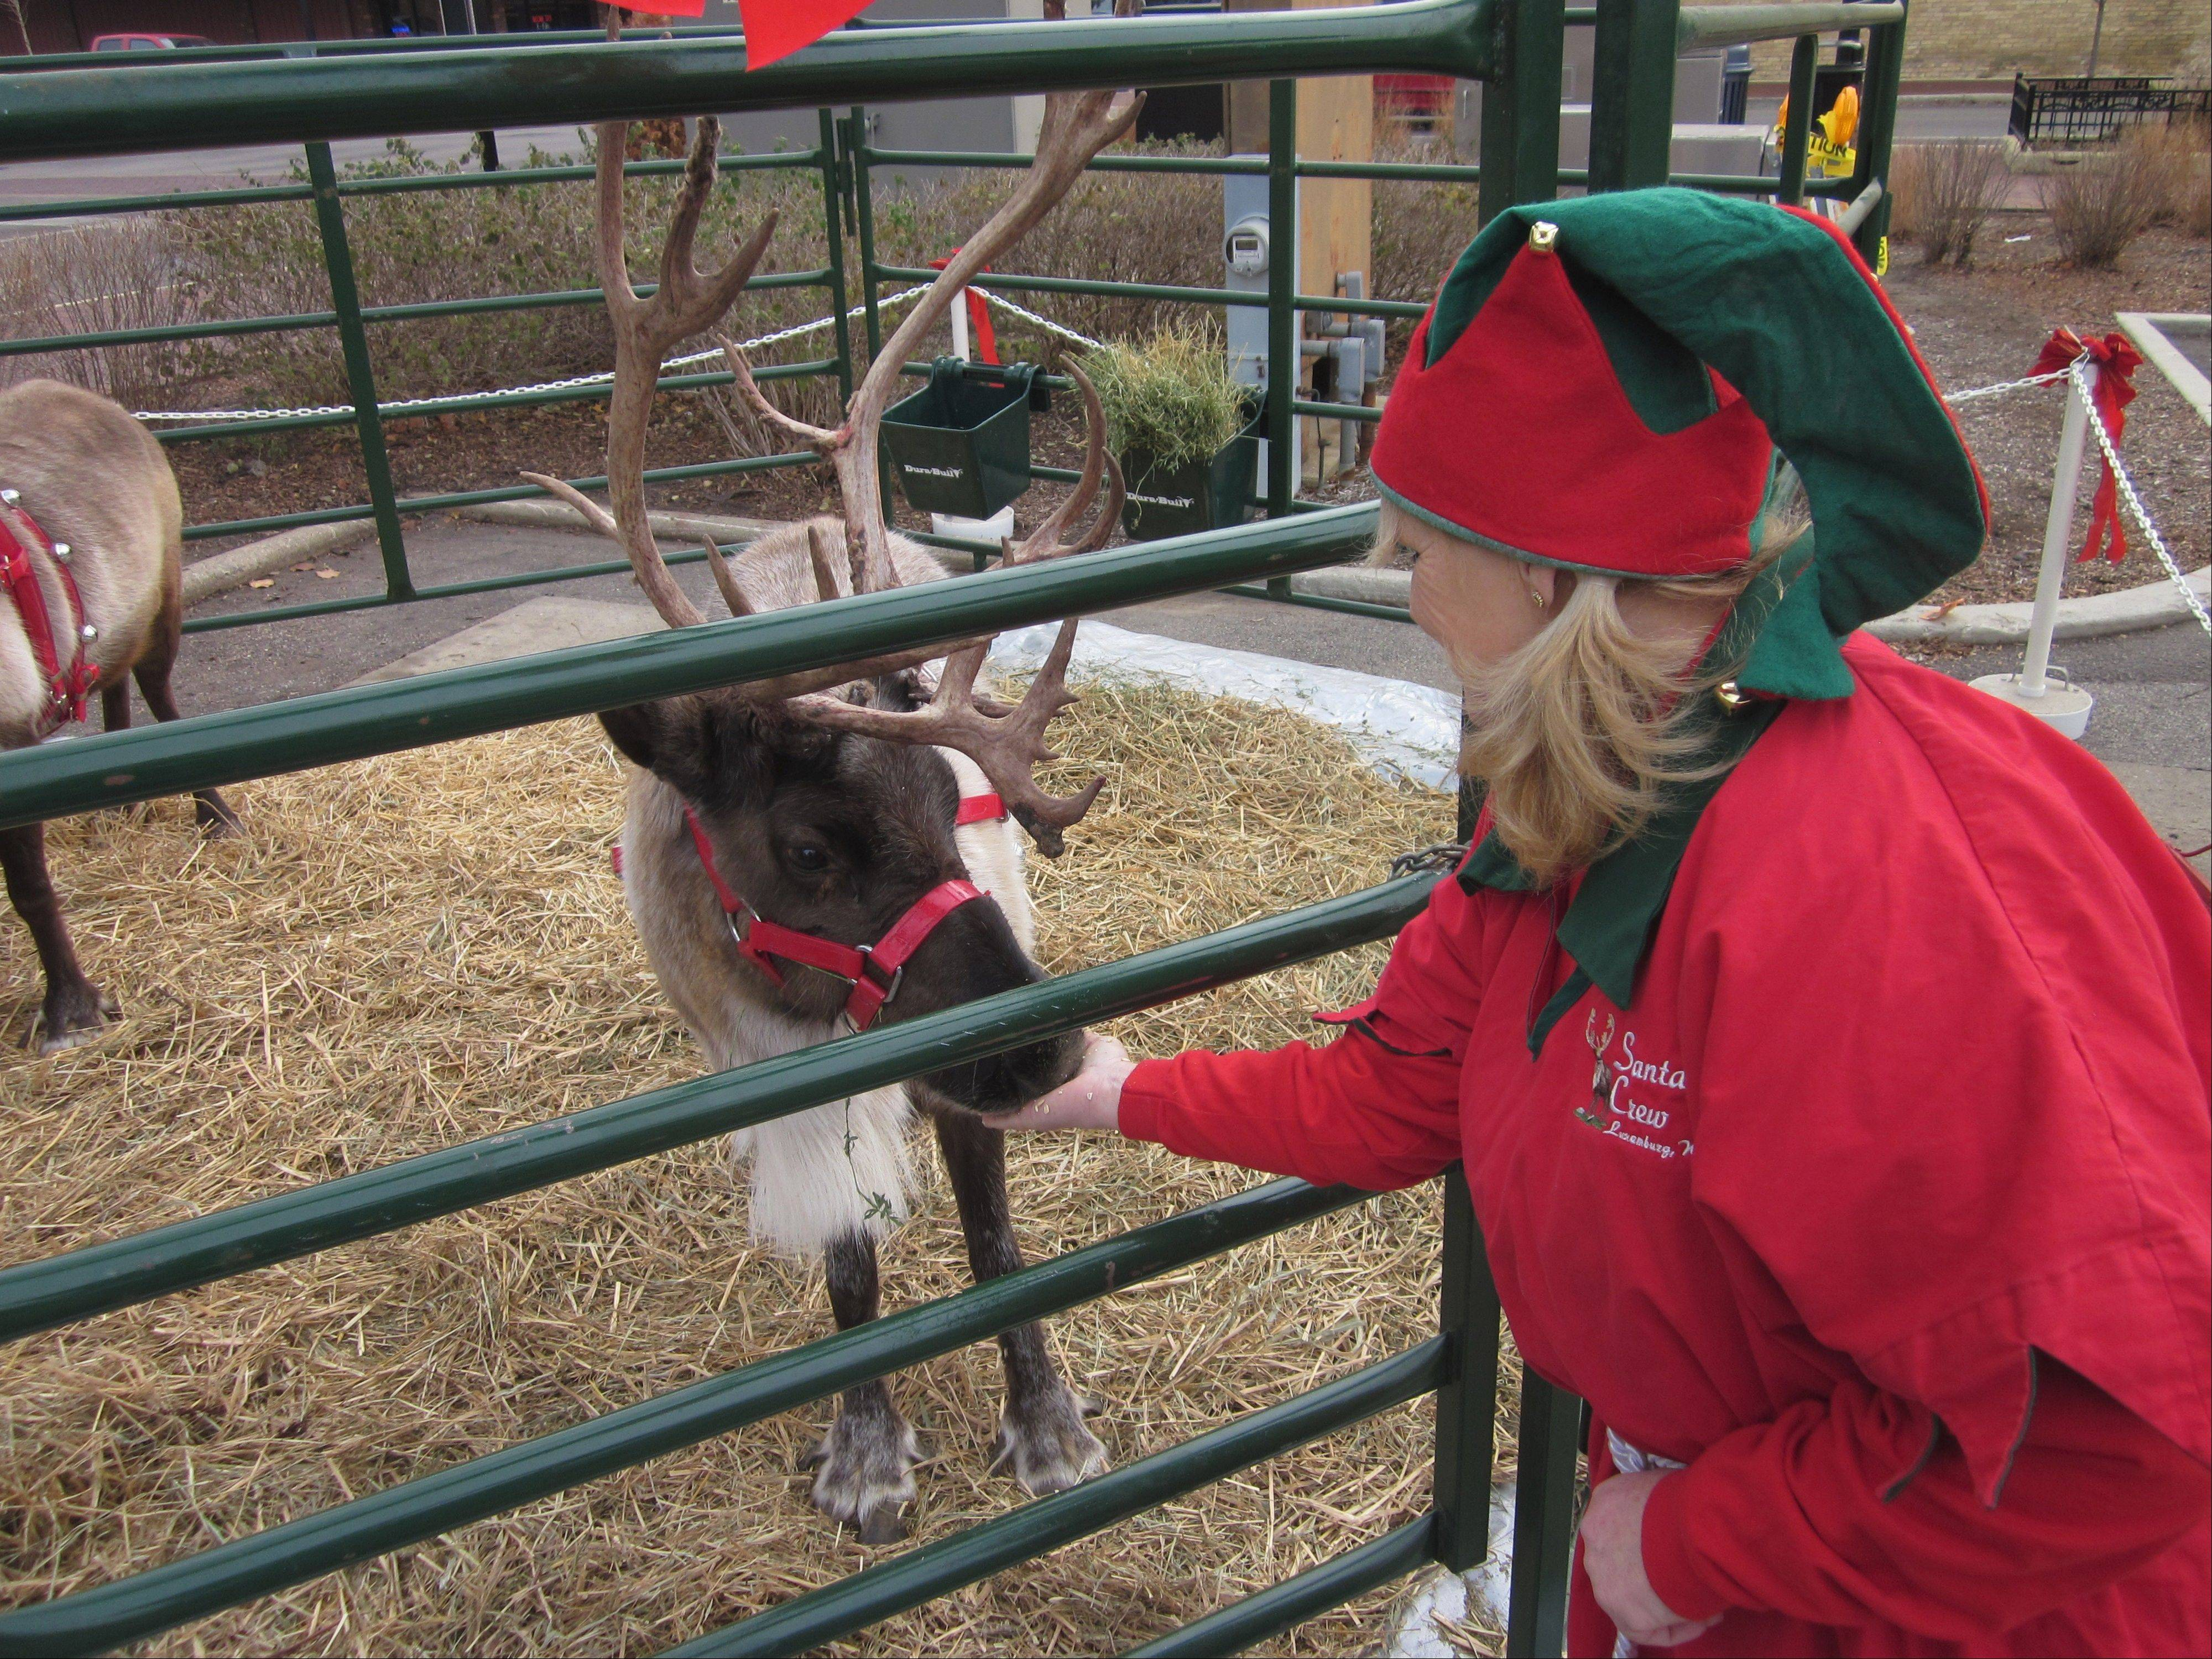 Bernadine Dart of Luxemburg, Wis., feeds one of her family's reindeer in downtown Elgin. The Darts brought two of the 300-pound animals to Elgin for a daylong winter celebration.